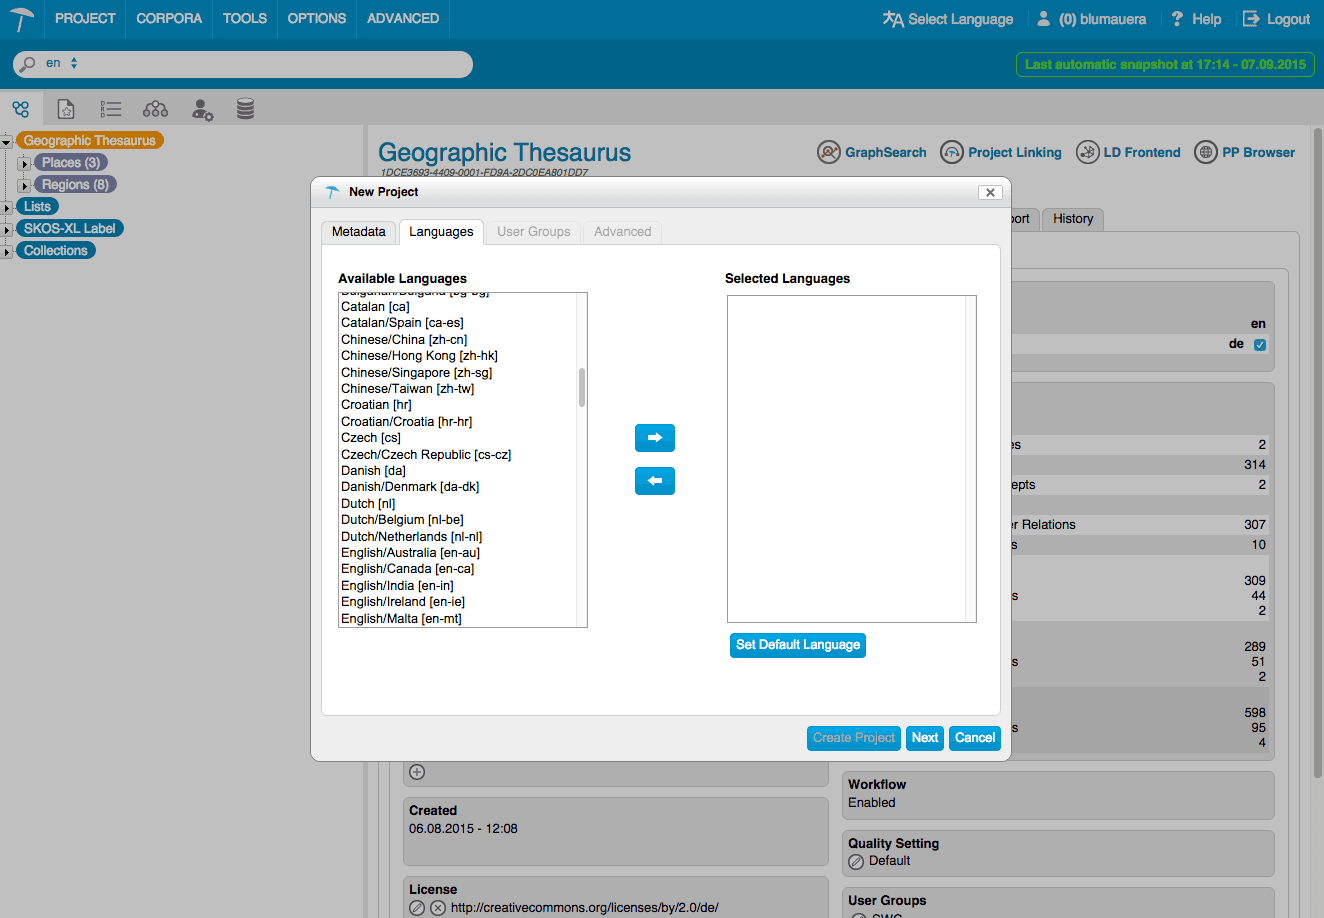 PoolParty project language settings image